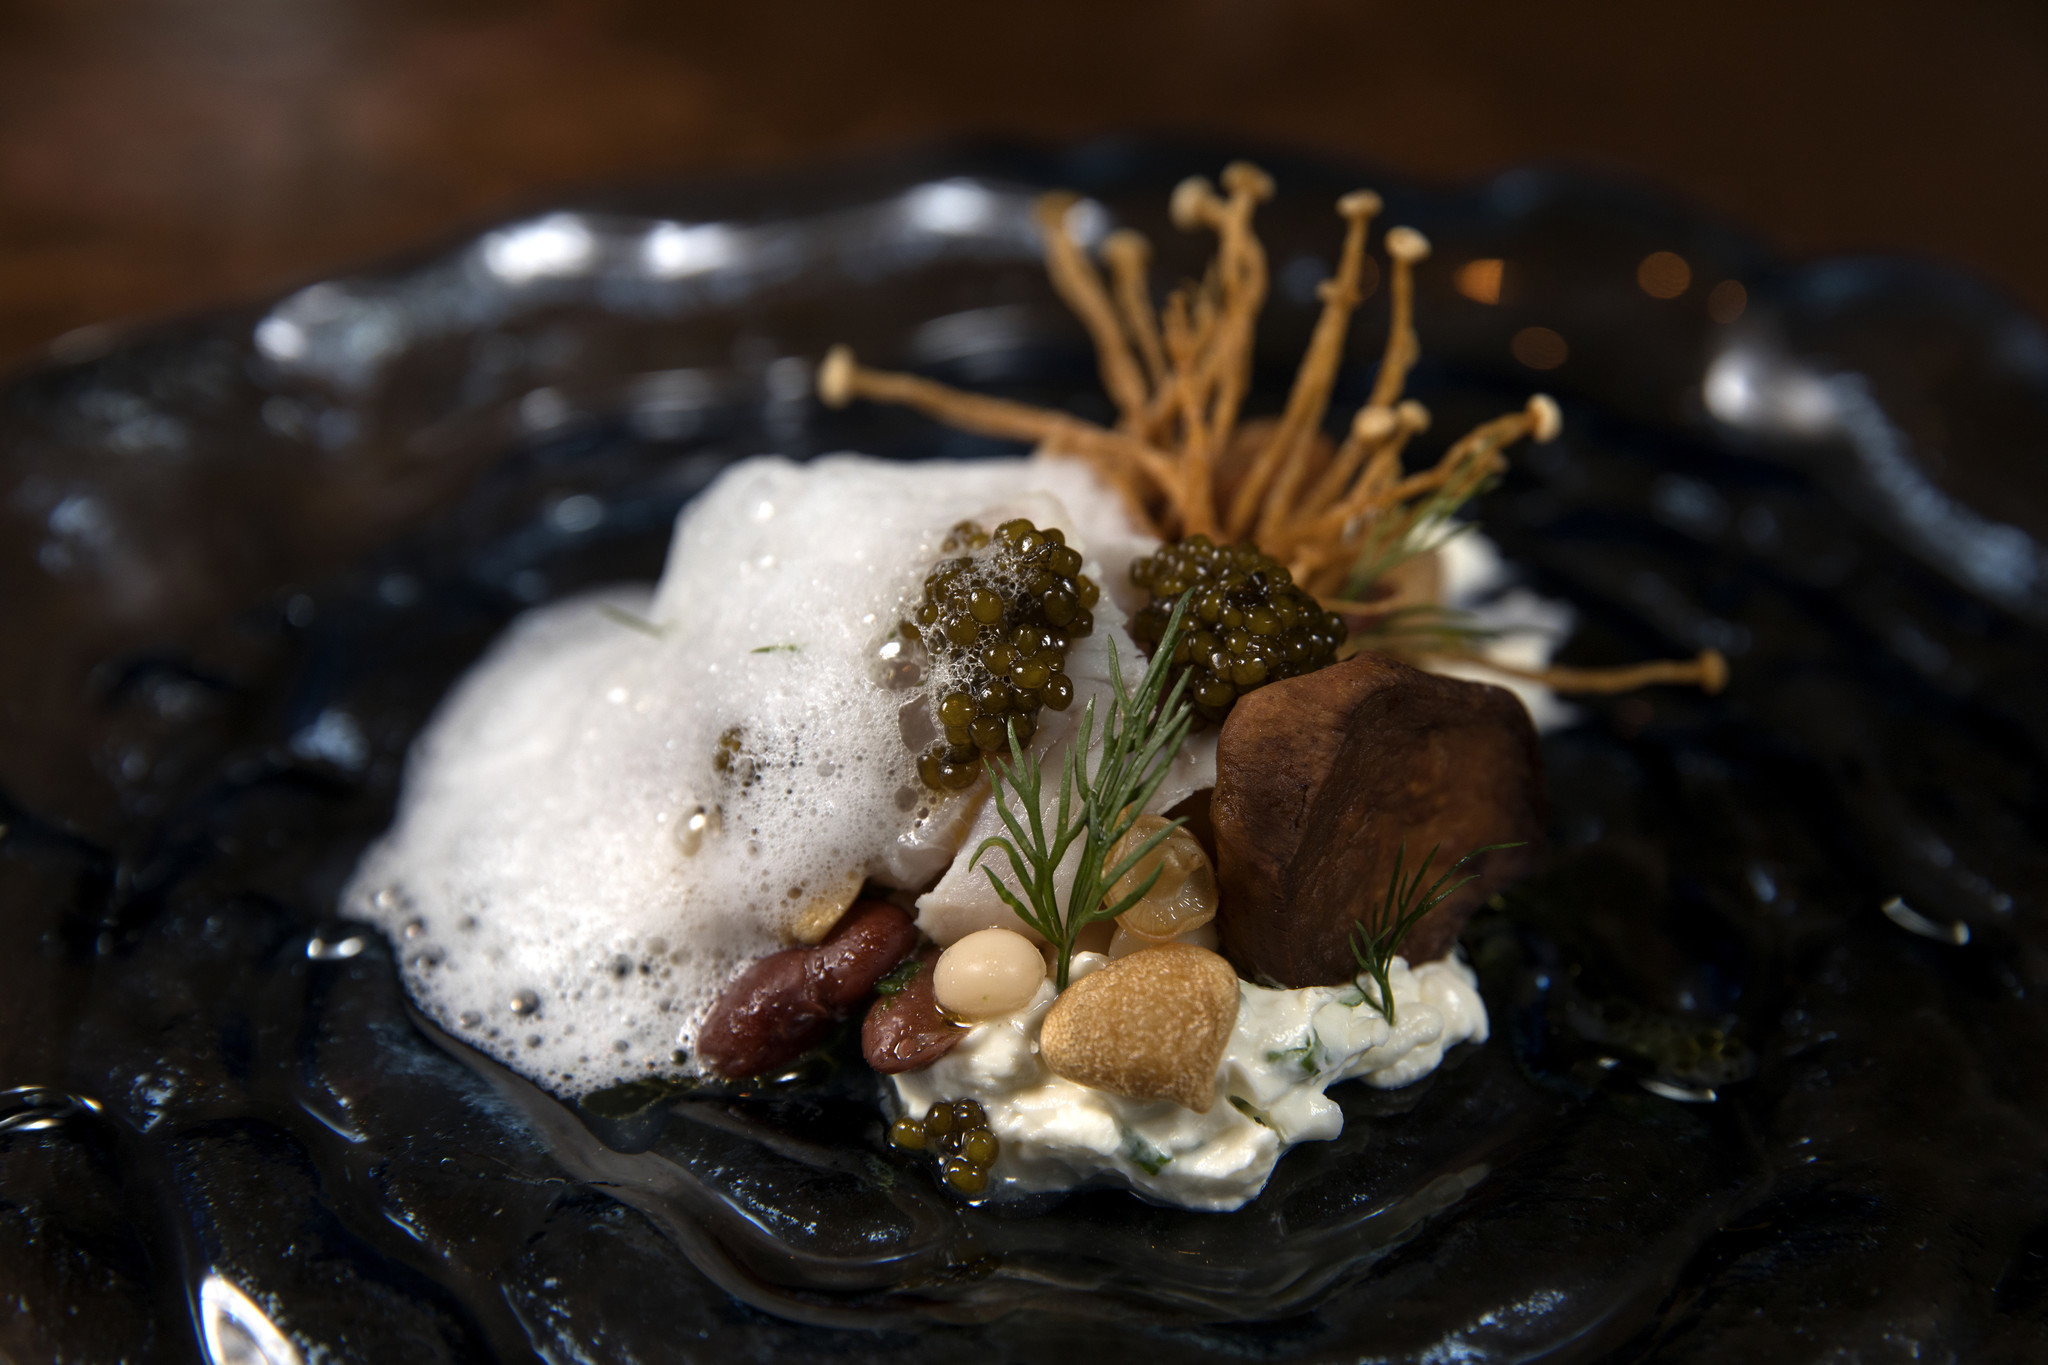 Review ancient rome menu at next is the most fascinating in years review ancient rome menu at next is the most fascinating in years chicago tribune forumfinder Images